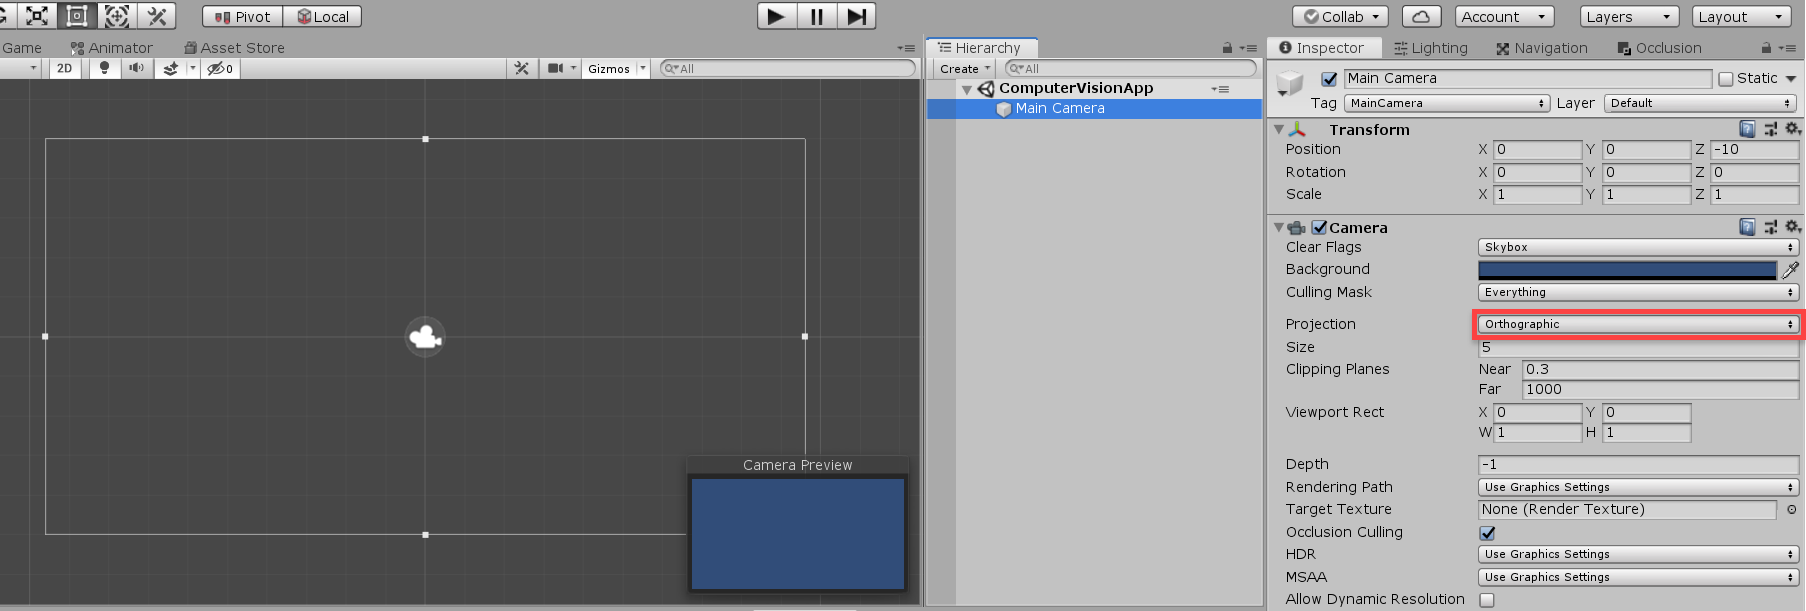 Unity Main Camera in the Inspector window